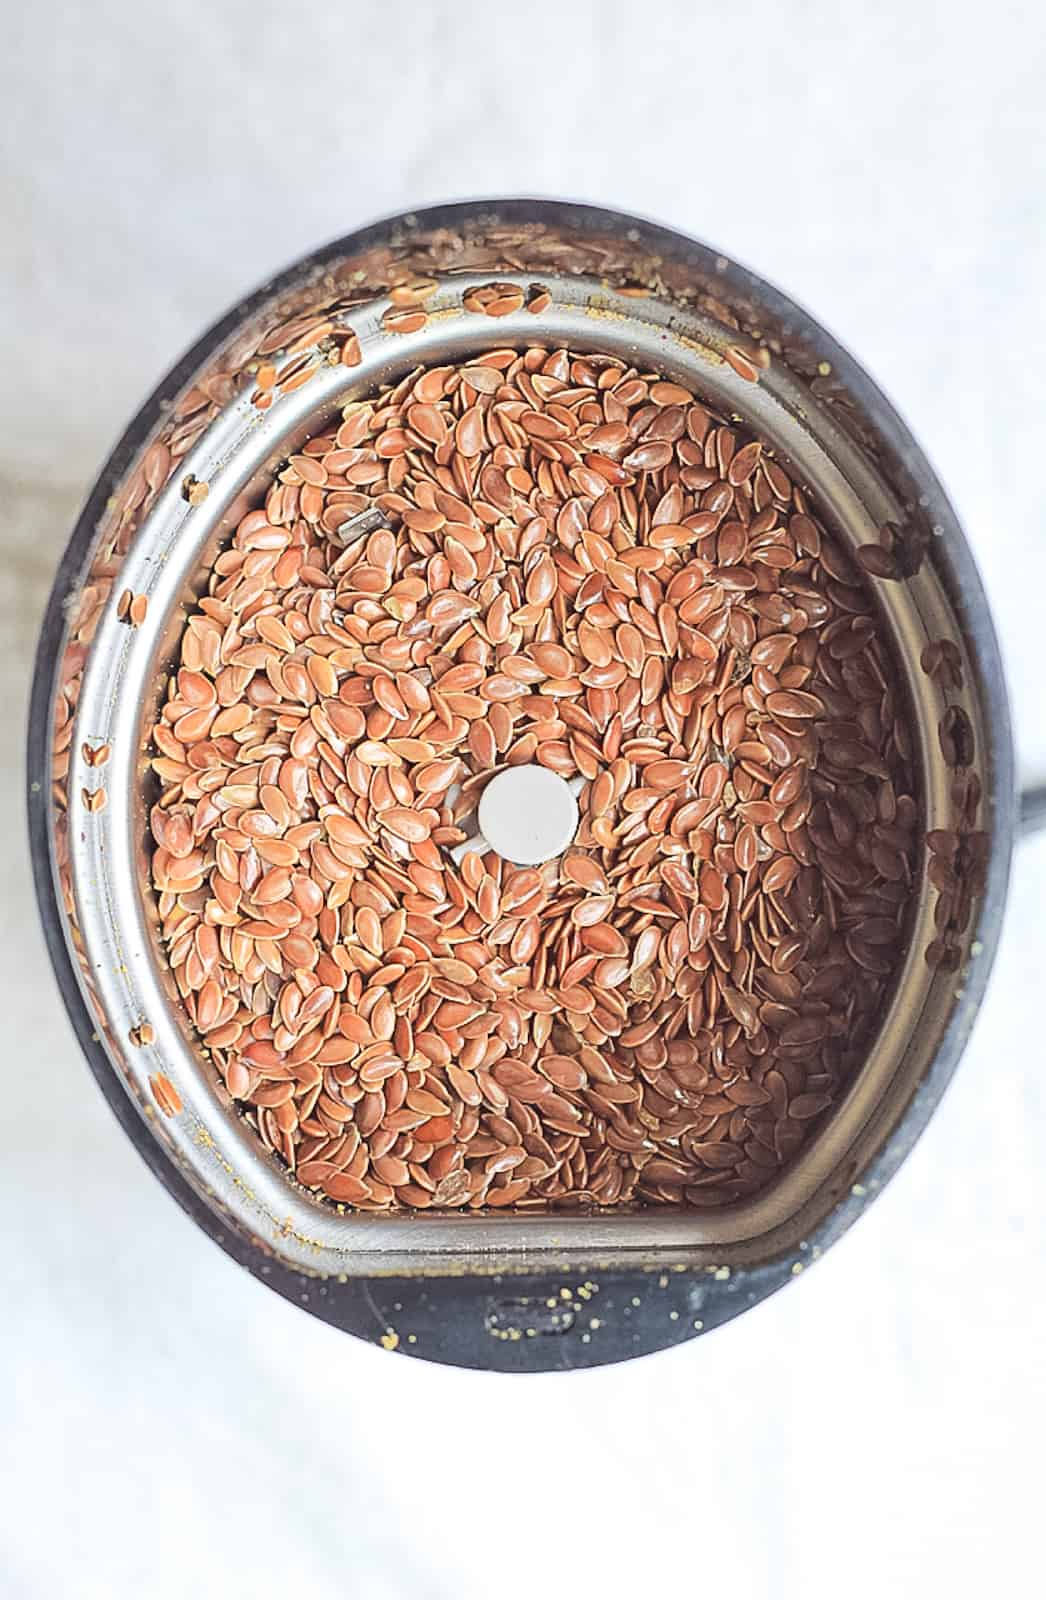 Spice grinder with whole flax seeds in it.